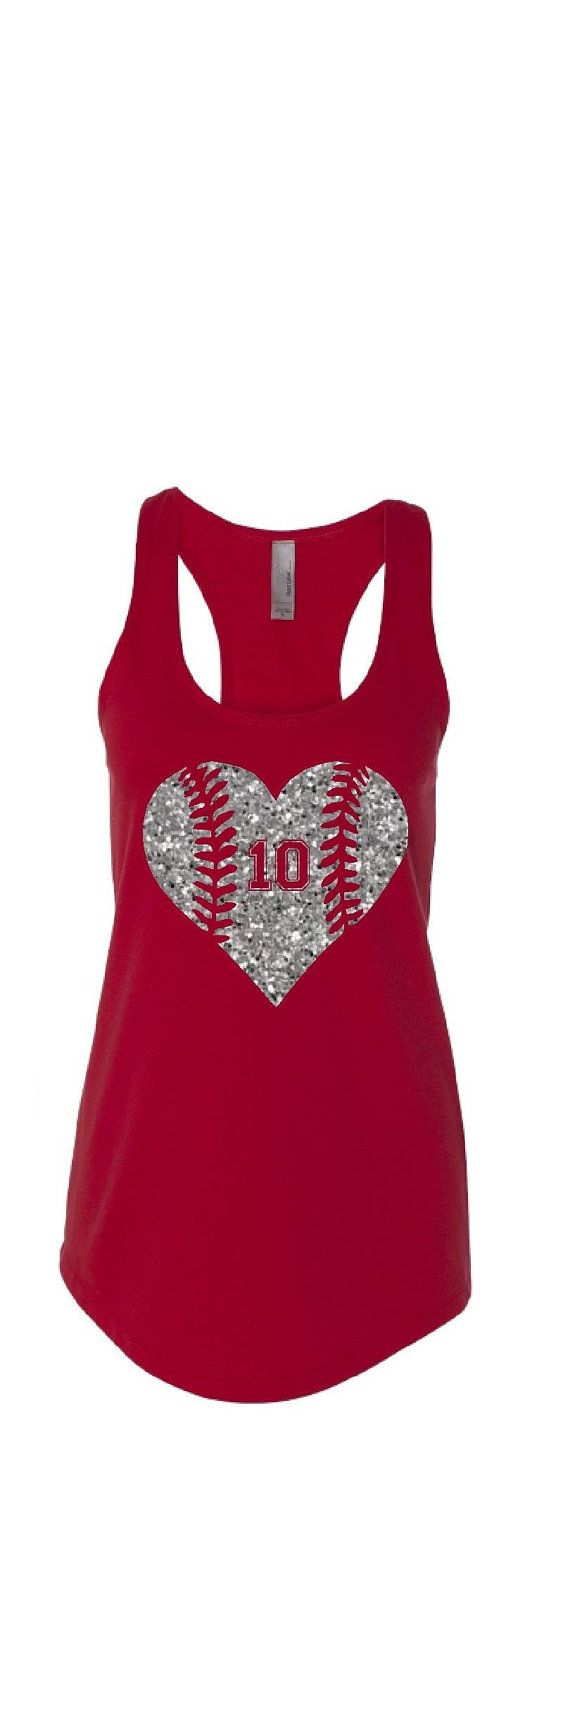 Baseball Bling Tank.Softball Bling by TNTAPPARELNMORE on Etsy